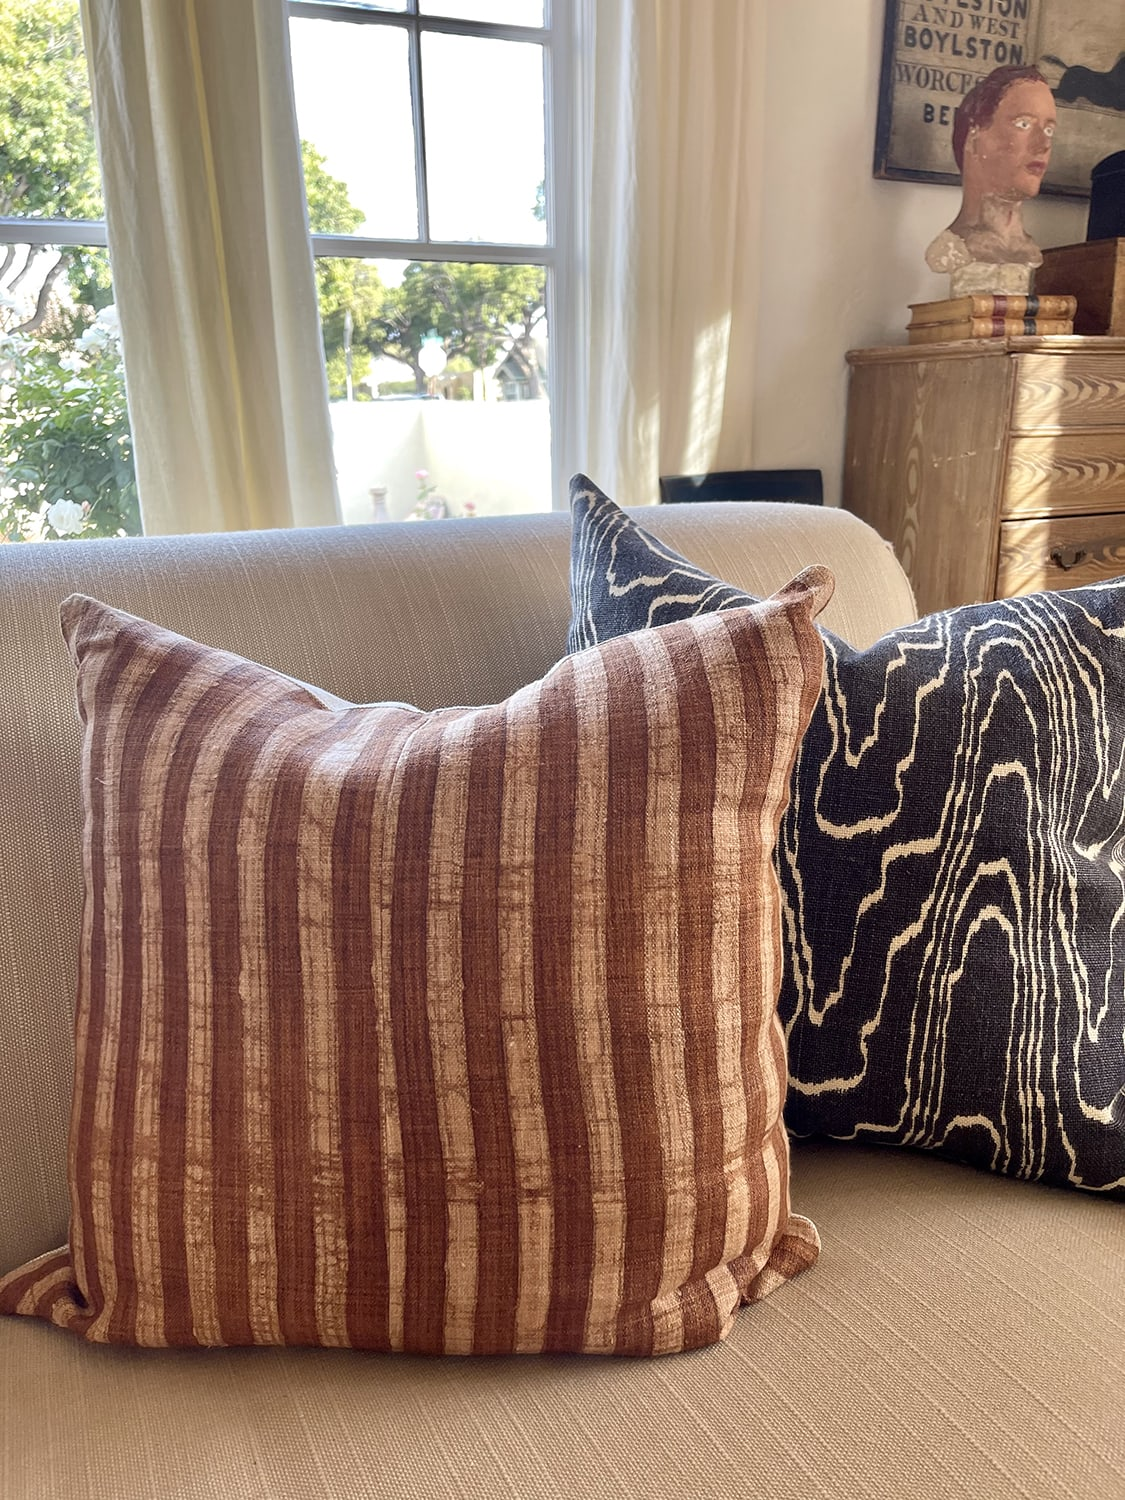 Homegirl Collection pillow with Kelly Wearstler for Groundworks pillow